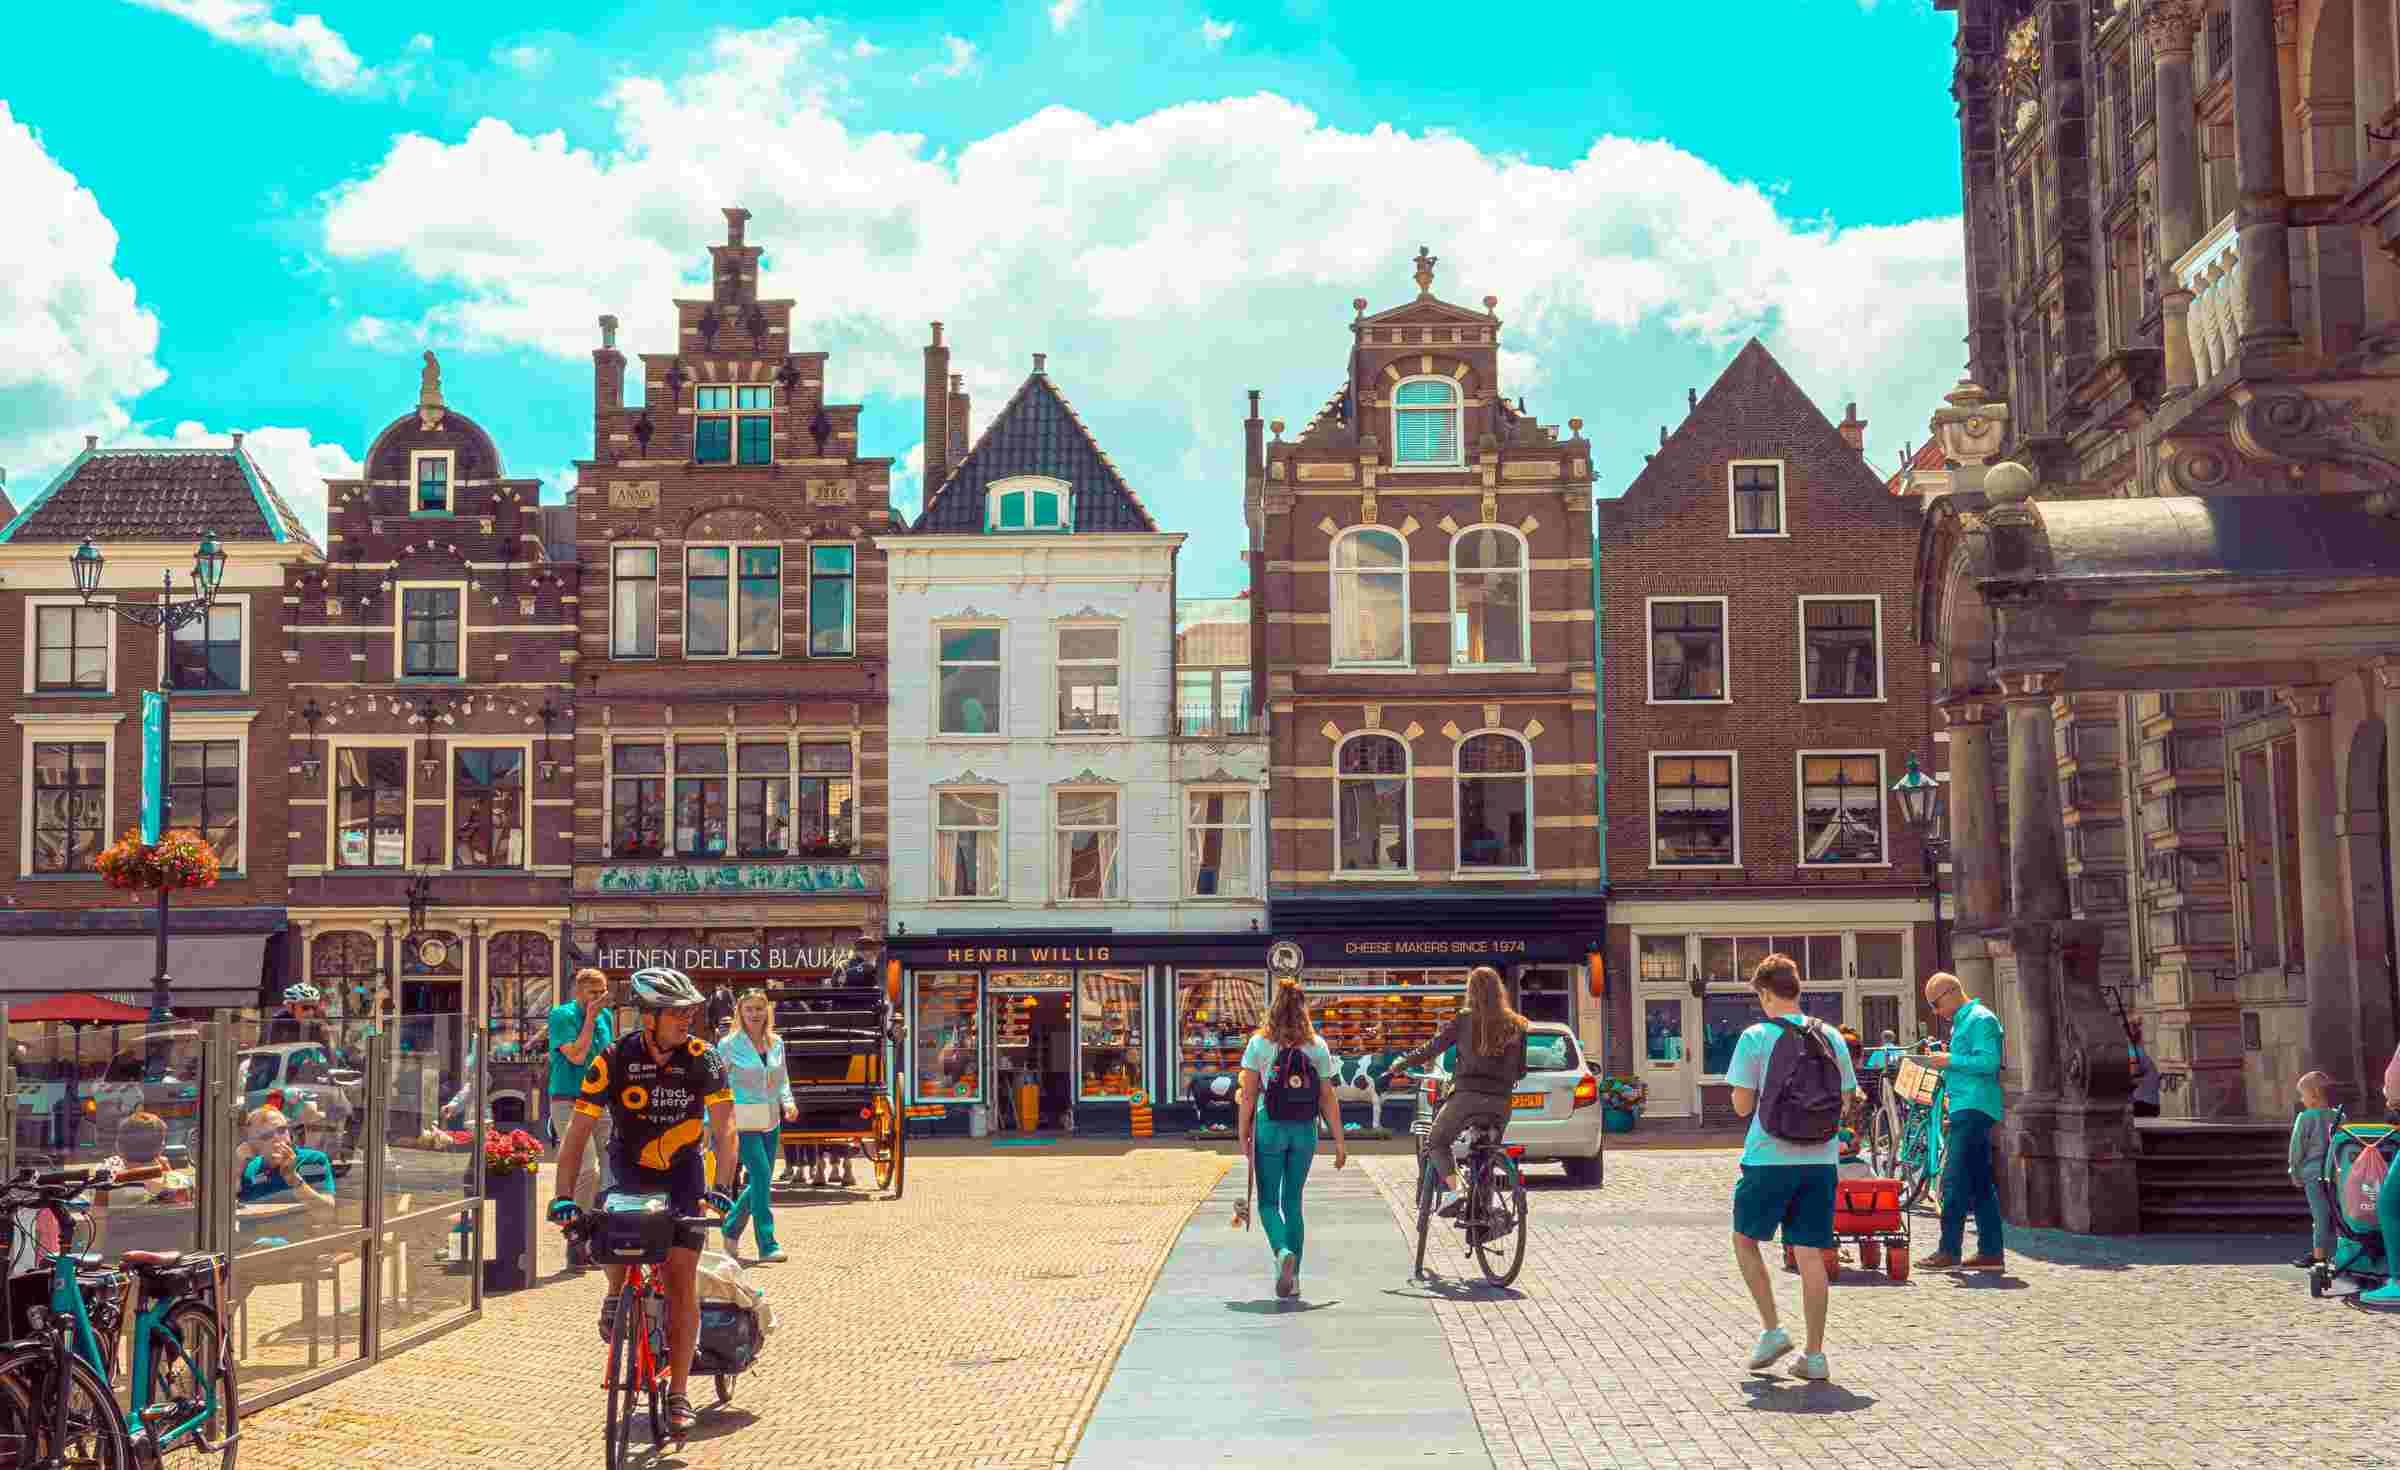 Highlights of Delft: The Blue's Clues image